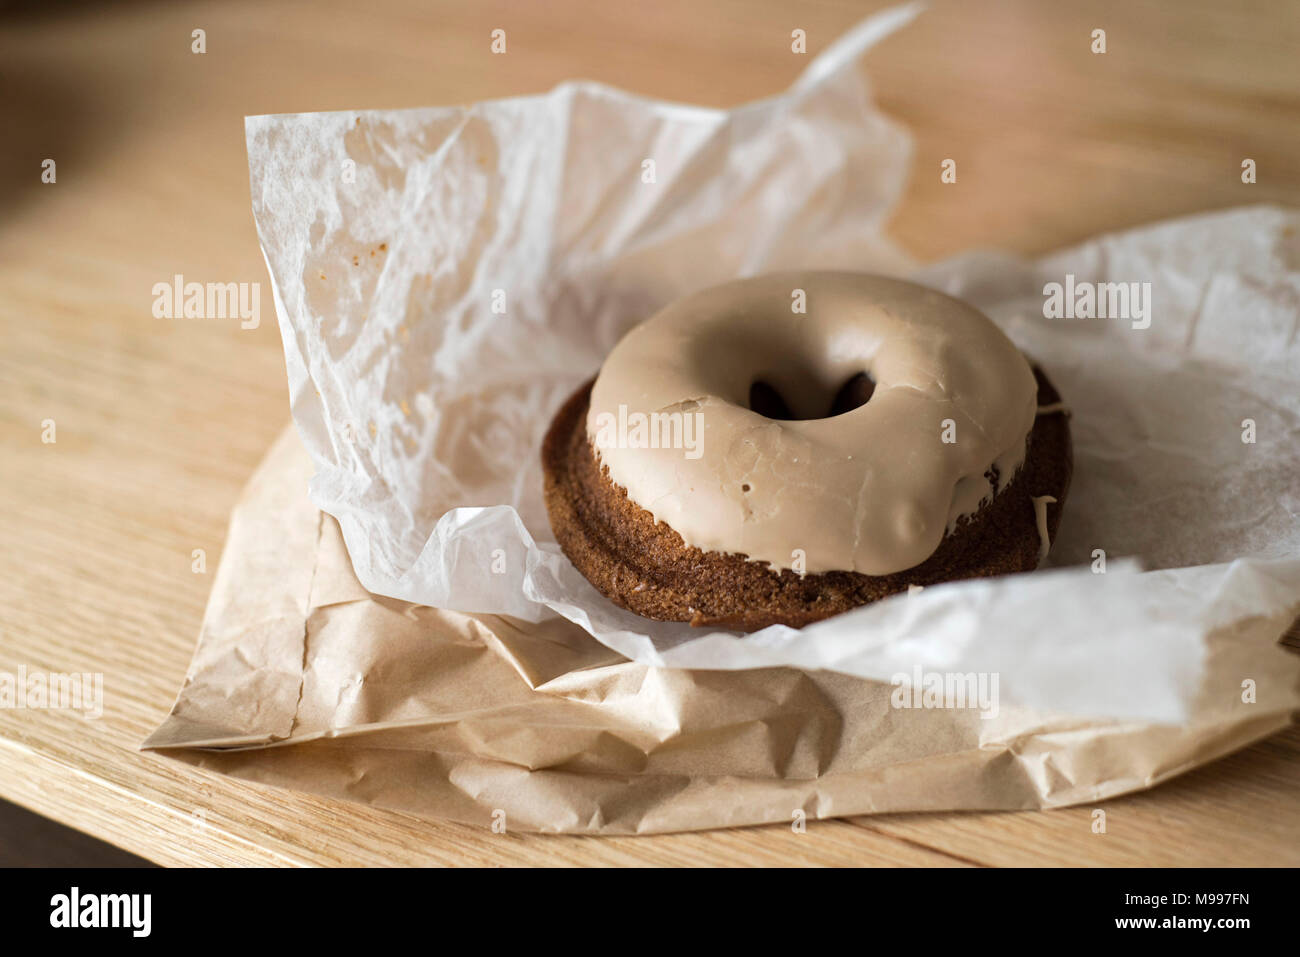 Ready to Eat Gluten-Free Donut on Parchment Paper and Brown Paper Bag - Stock Image